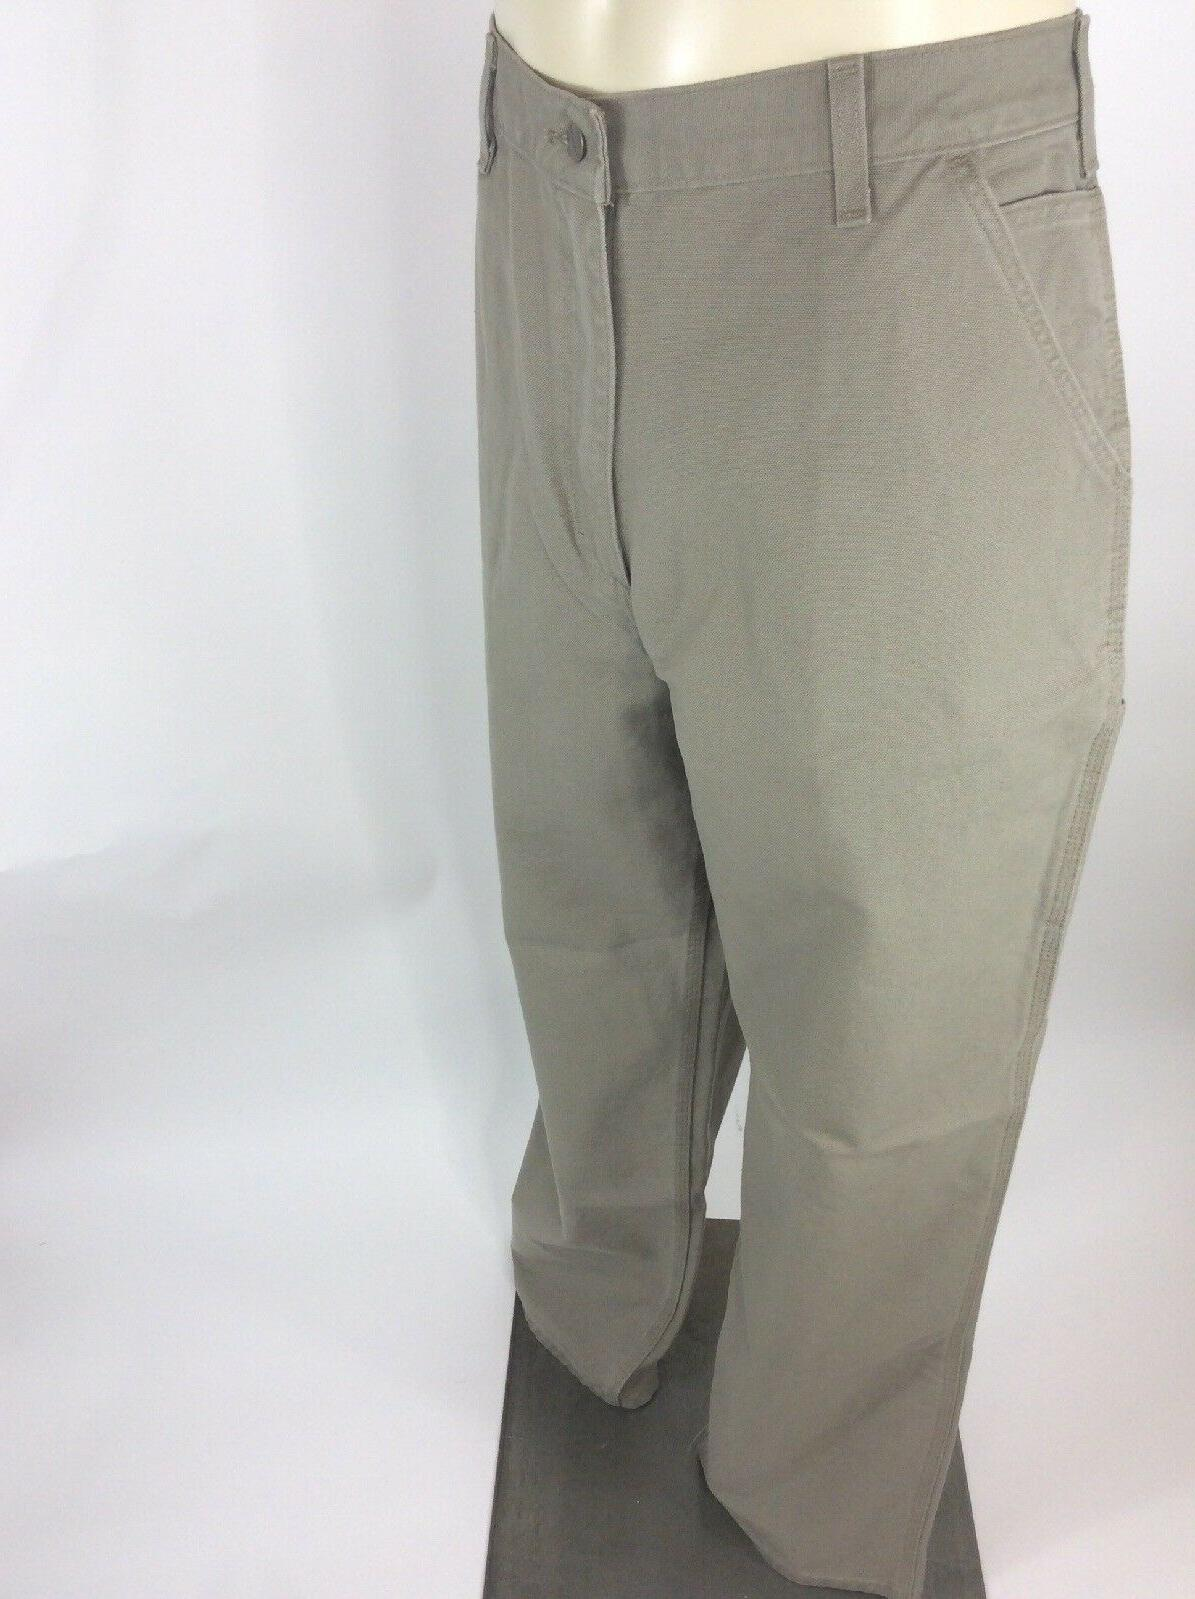 Carhartt Washed Duck Pants RN# 14806 Mens Cargo